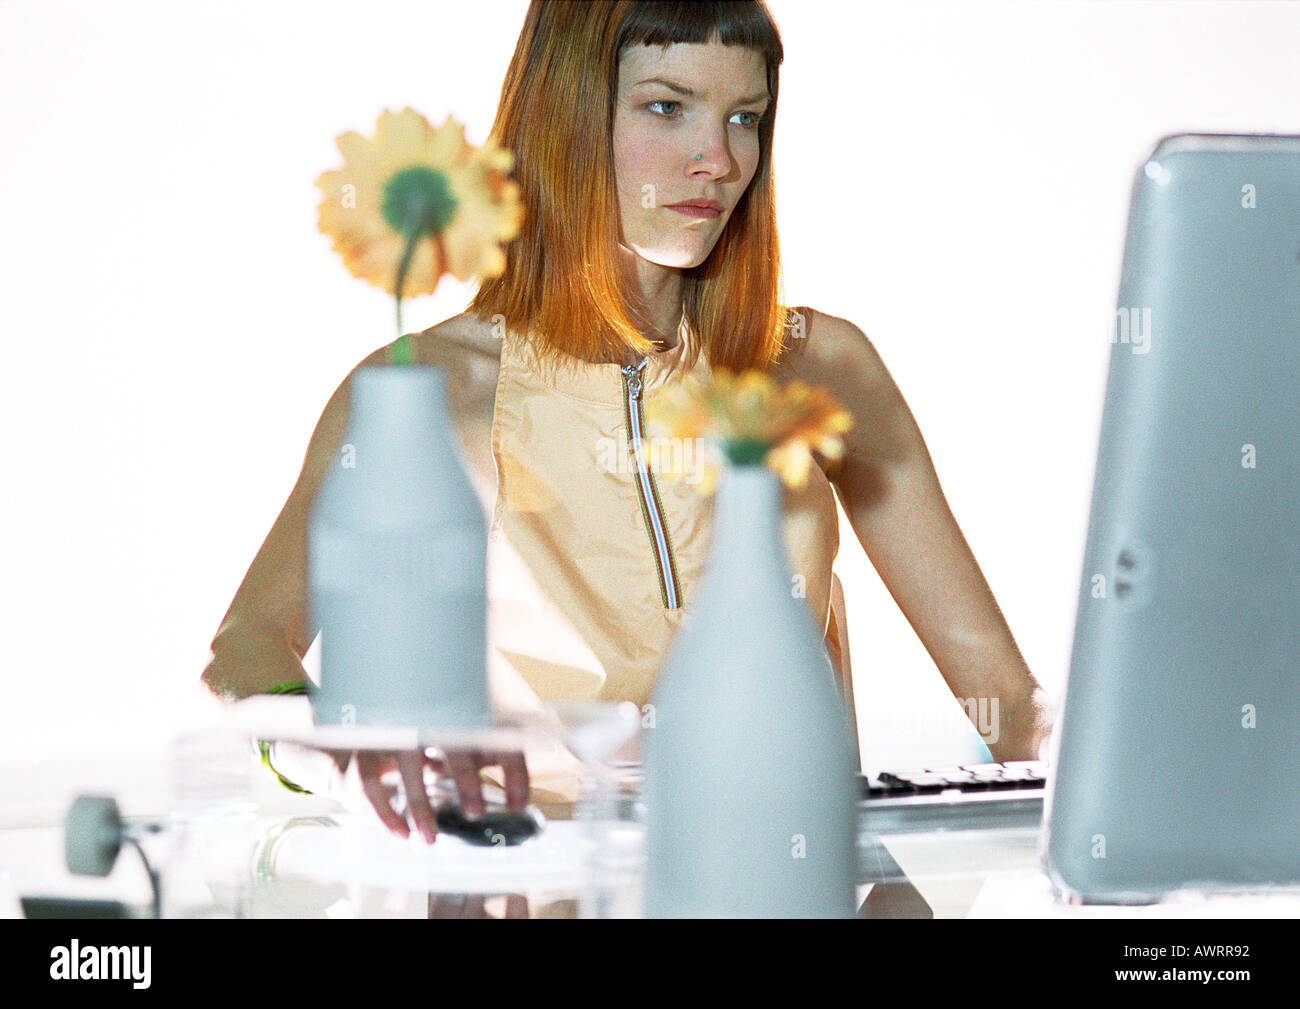 Woman using flat screen computer at desk - Stock Image